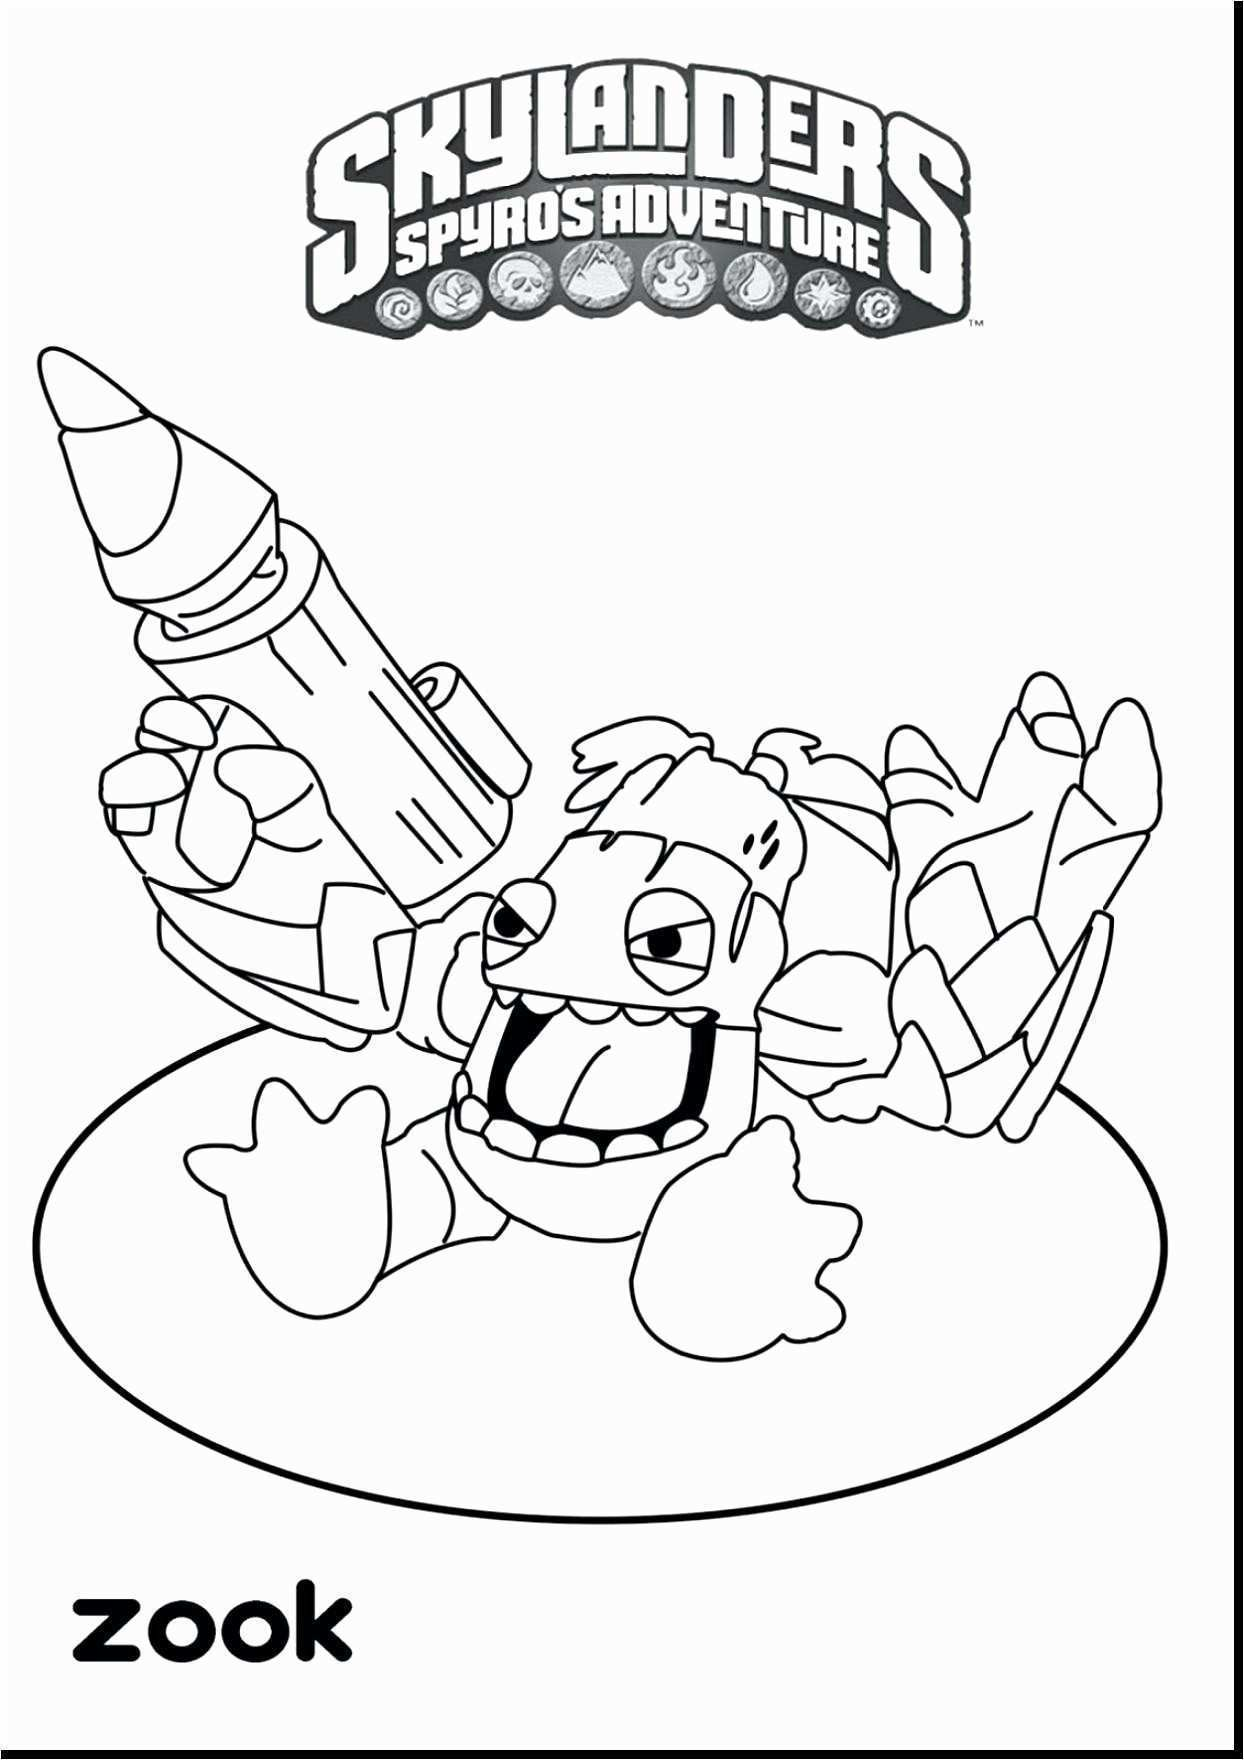 New 45 Luxury Graph Childrens Coloring Books – Coloring Sheets For Kids